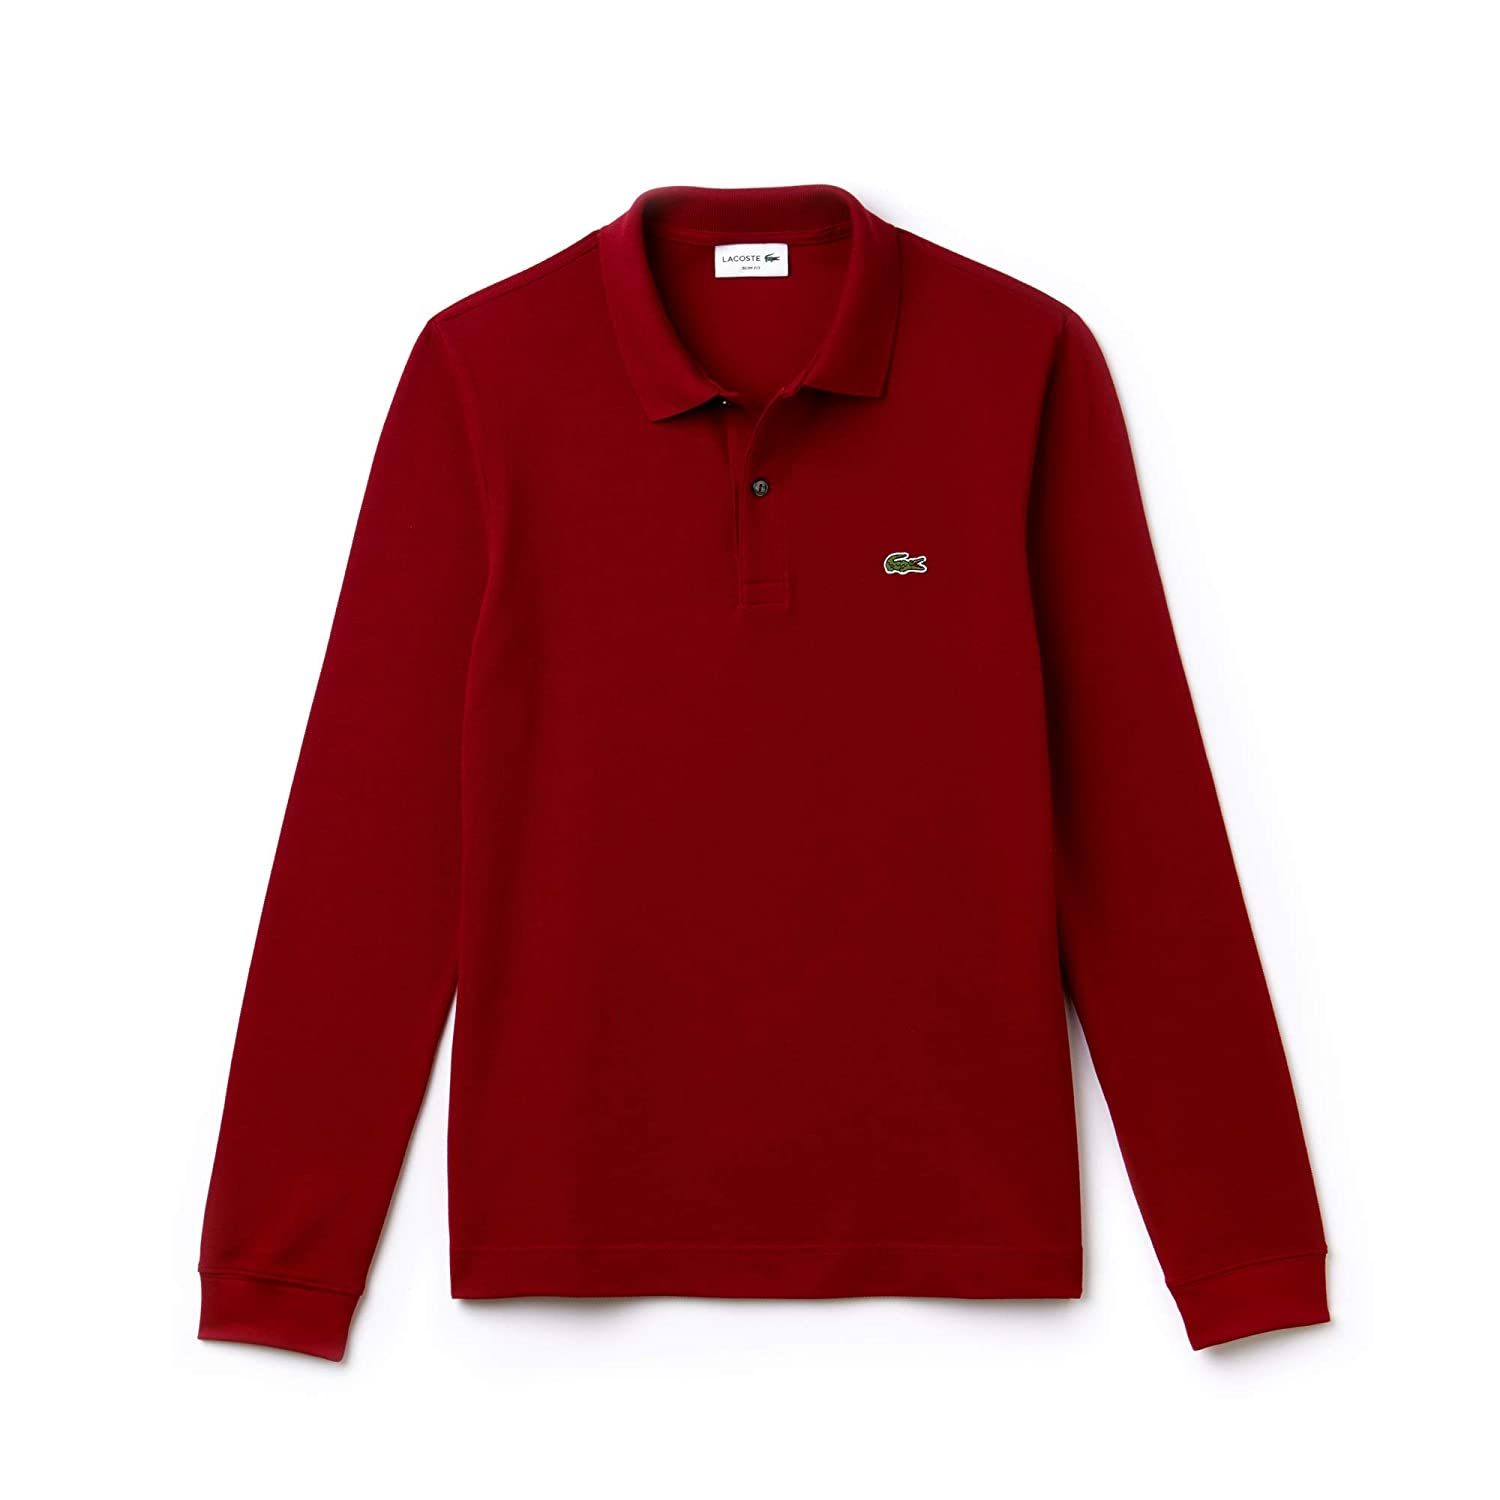 Rouge (Bordeaux 476) XXXX-grand  Lacoste, Polo Slim Fit Homme